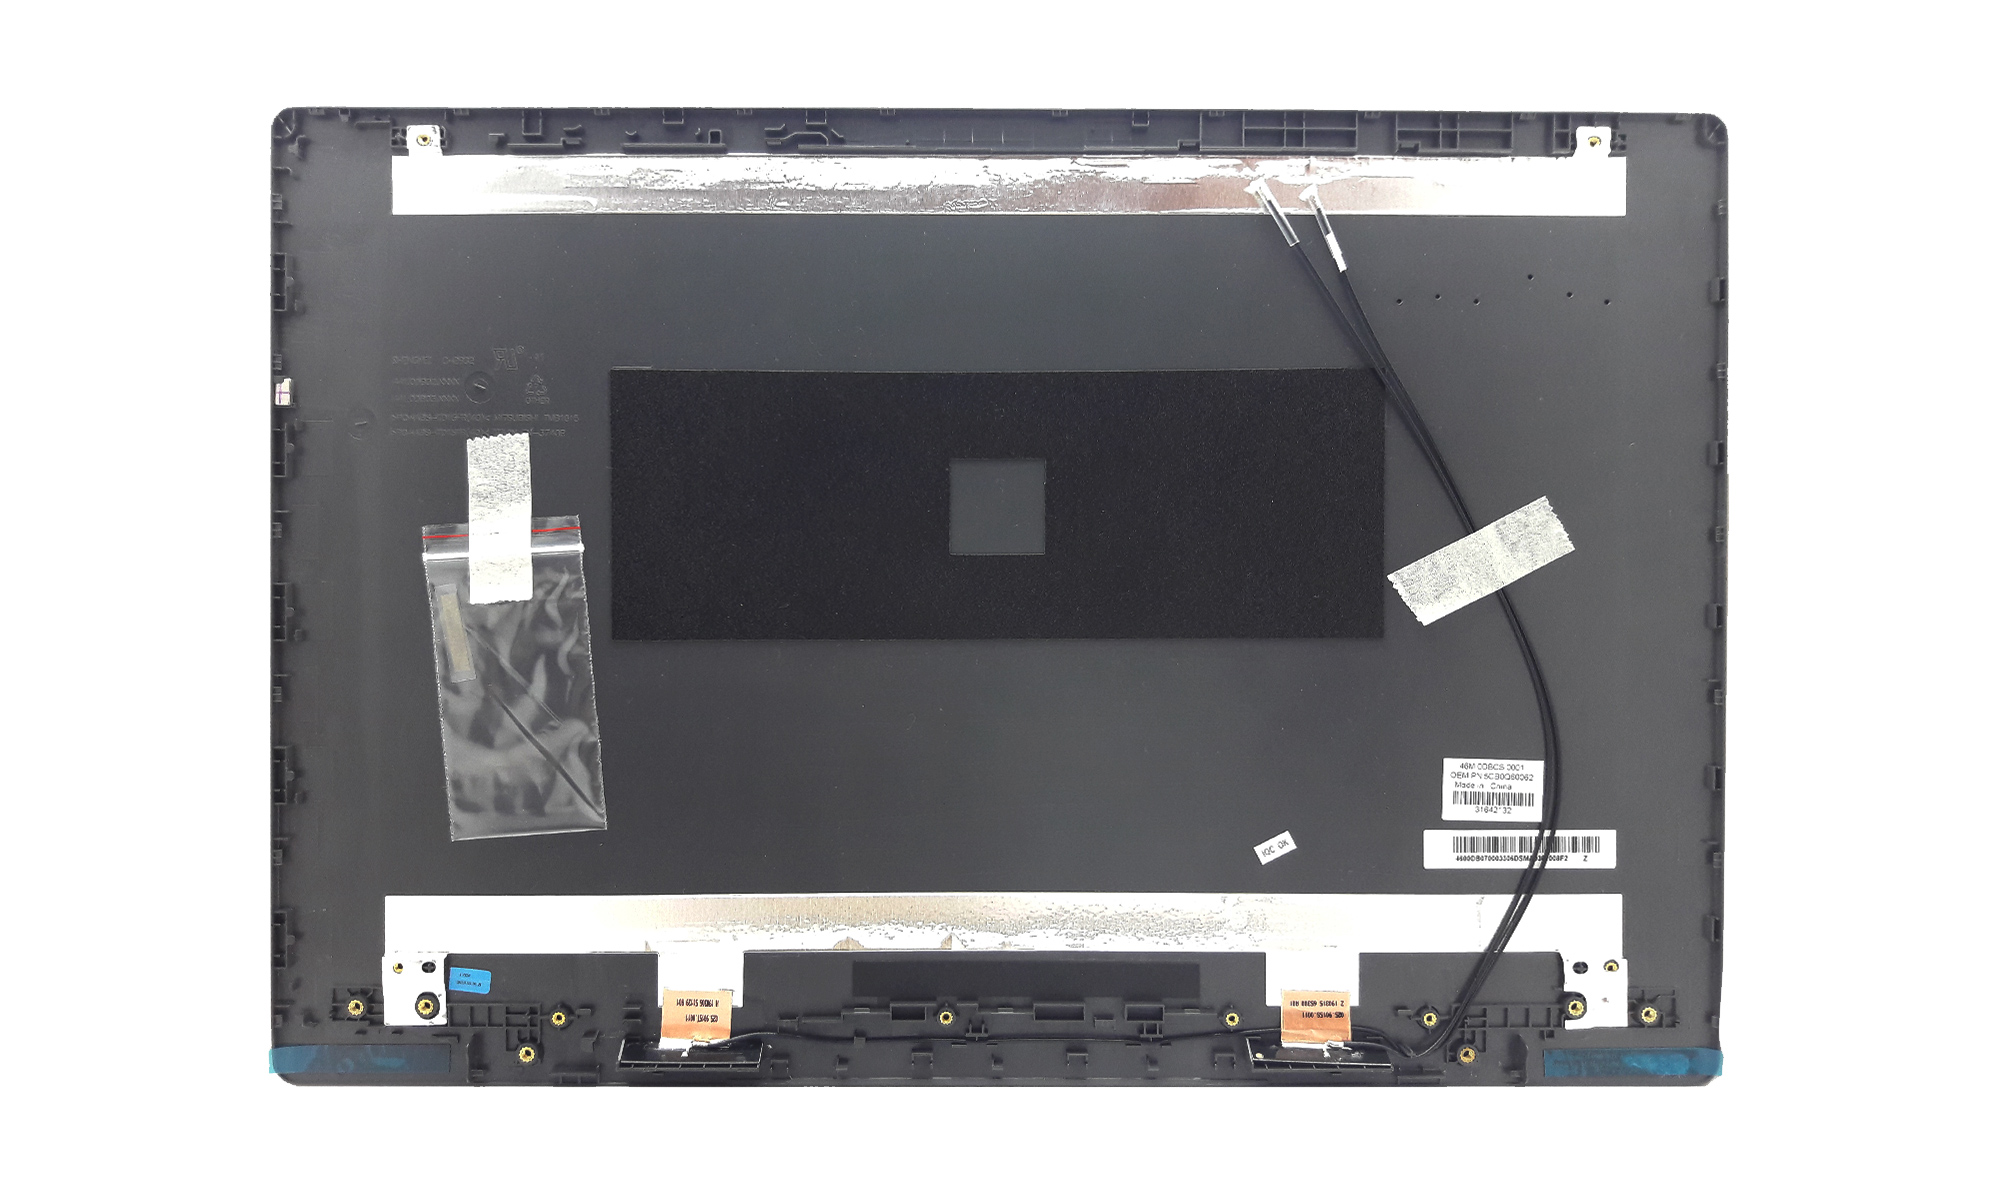 Capac display original Lenovo V330-15ISK, V330-15IKB, gri, model 5CB0Q60062